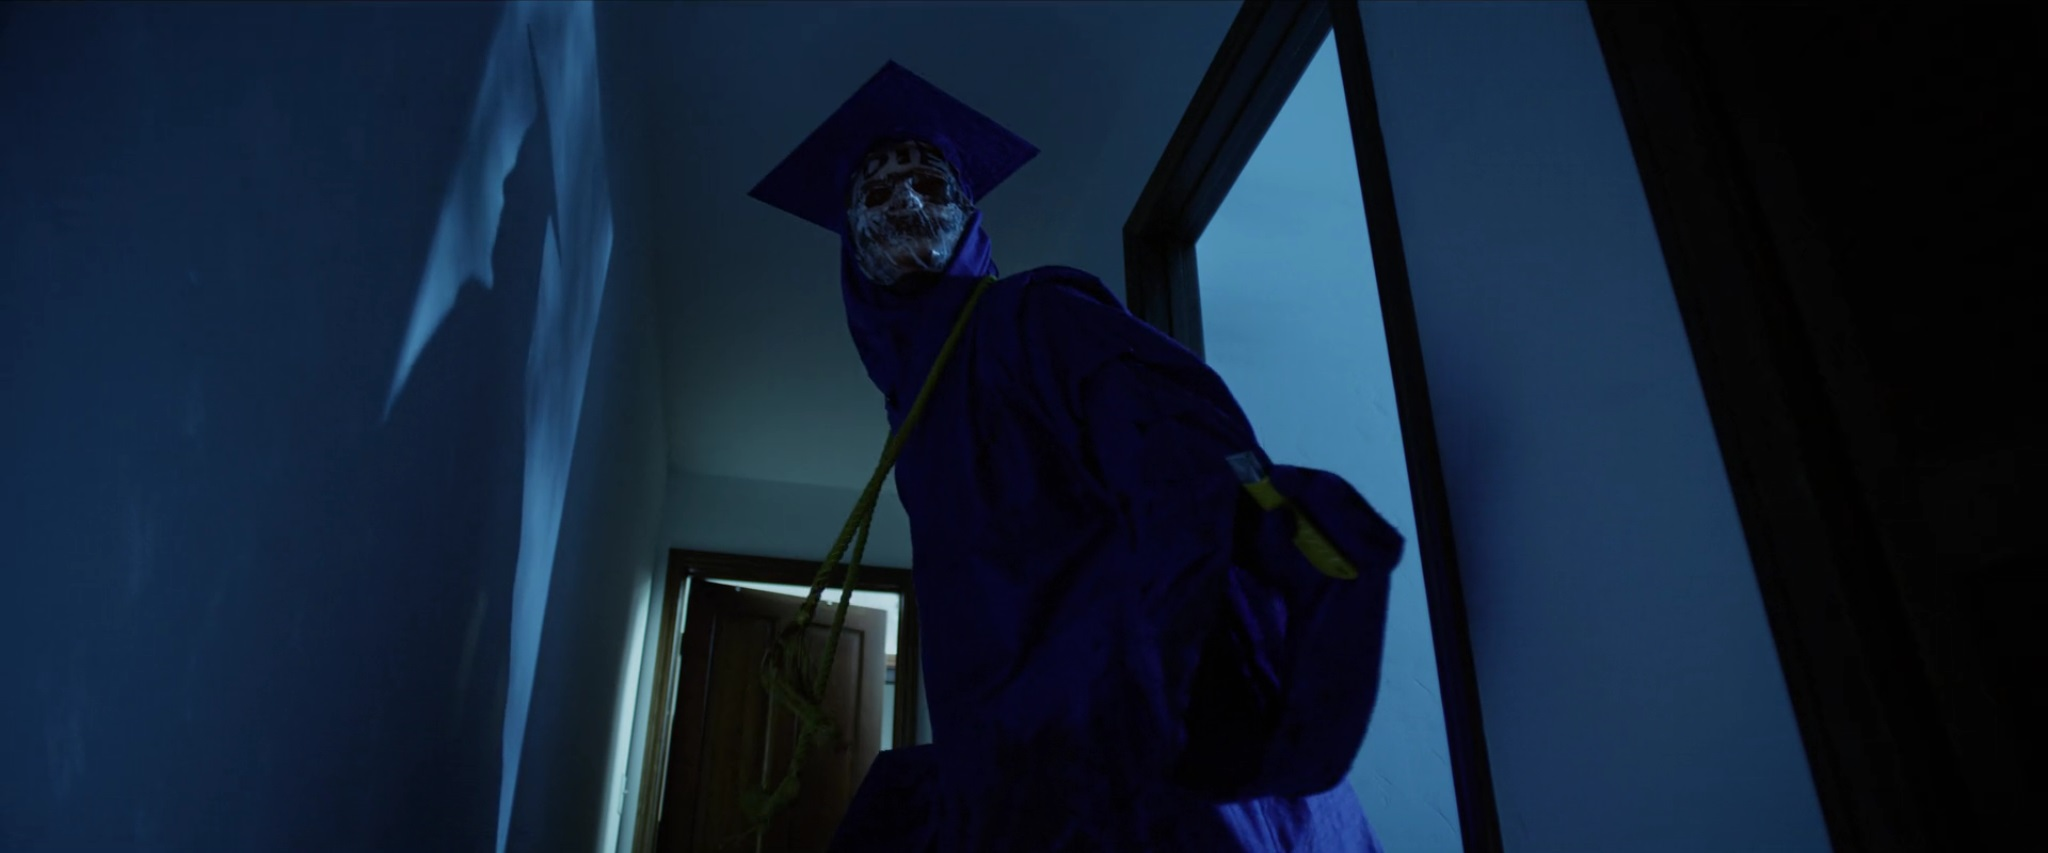 Most Likely to Die – Masked Killer